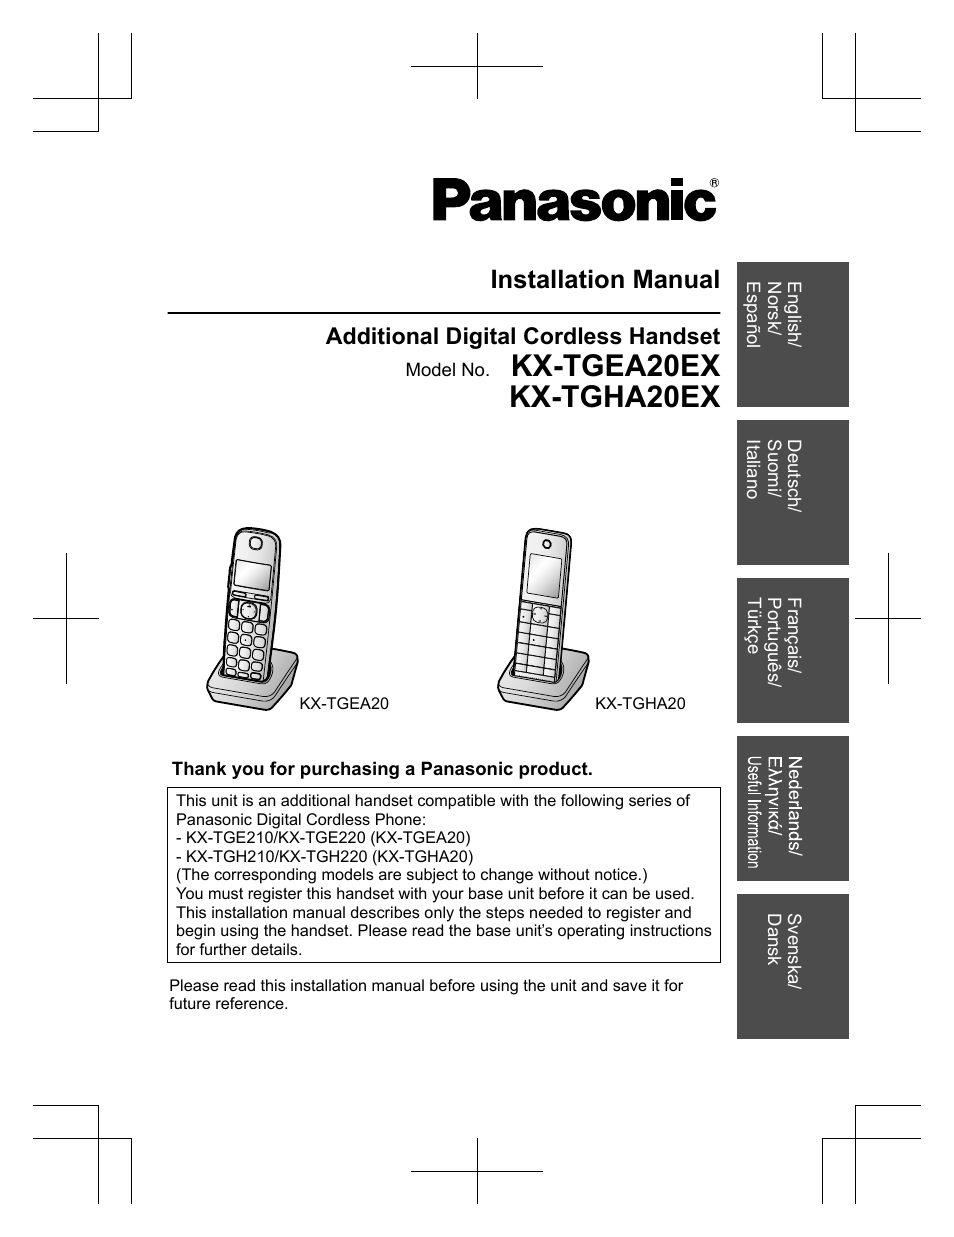 Panasonic KXTGEA20EX User Manual | 112 pages | Also for